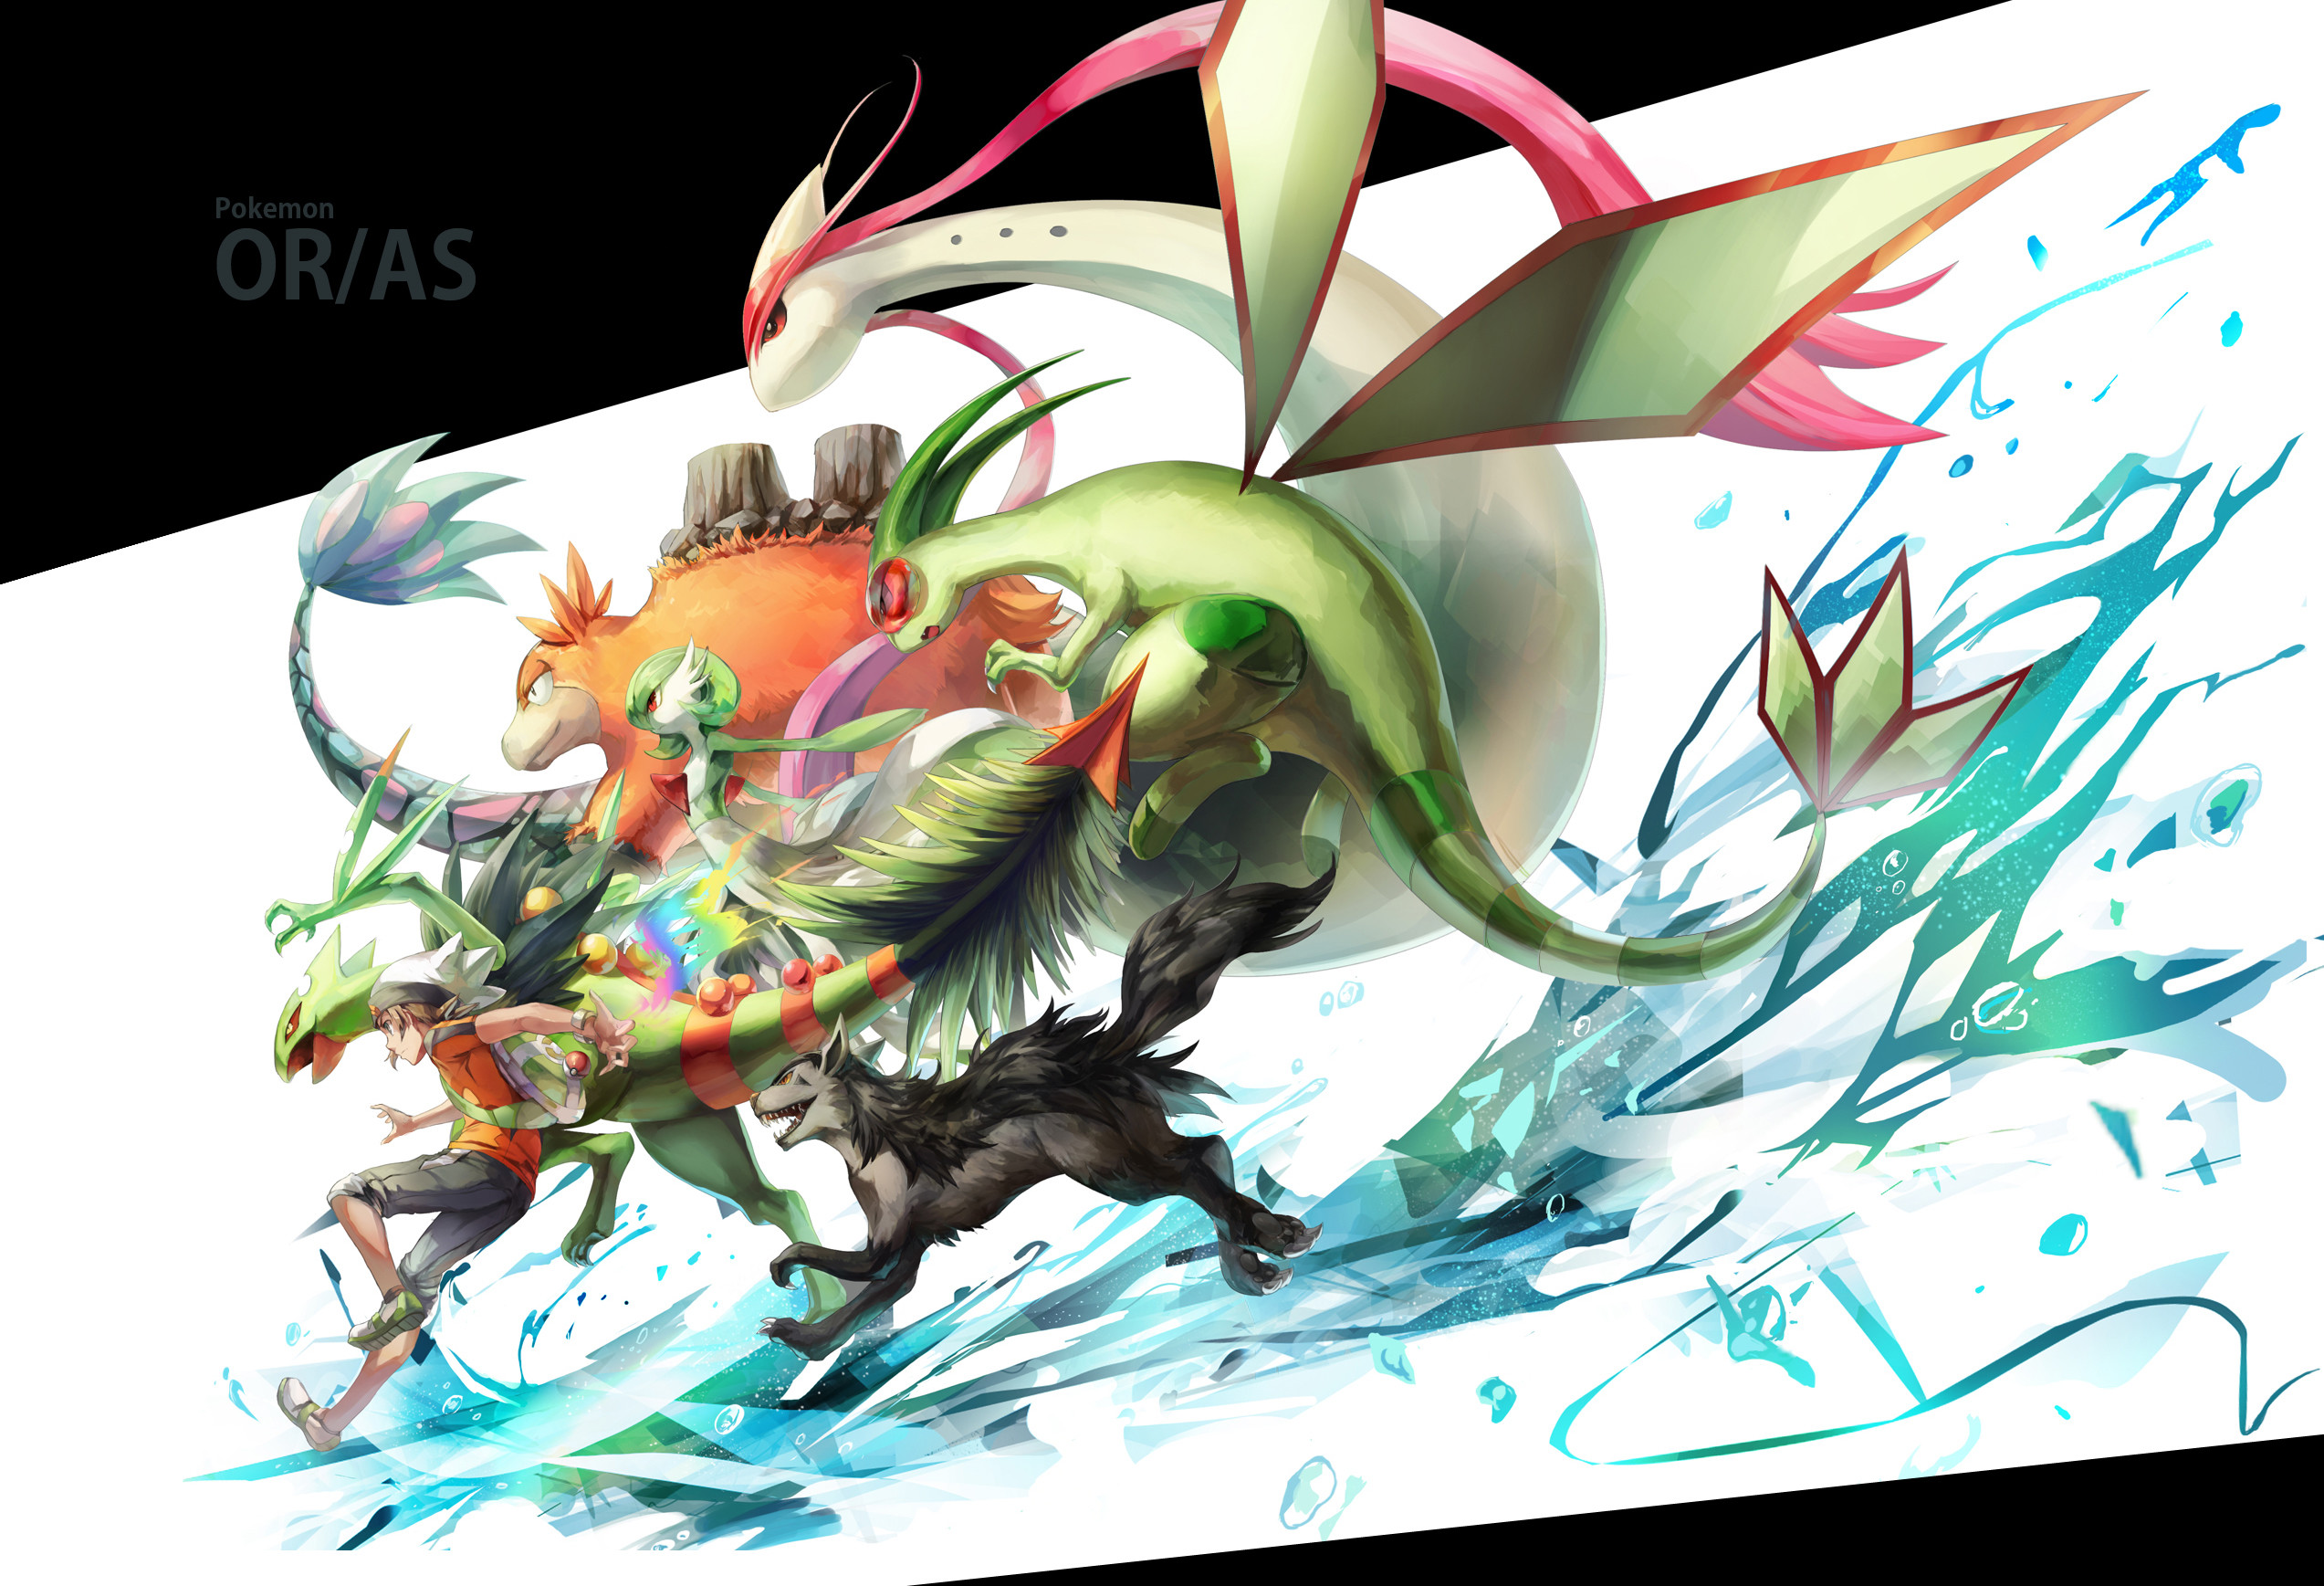 2546x1737 Pokémon: Omega Ruby and Alpha Sapphire HD Wallpaper | Hintergrund |   | ID:589621 - Wallpaper Abyss